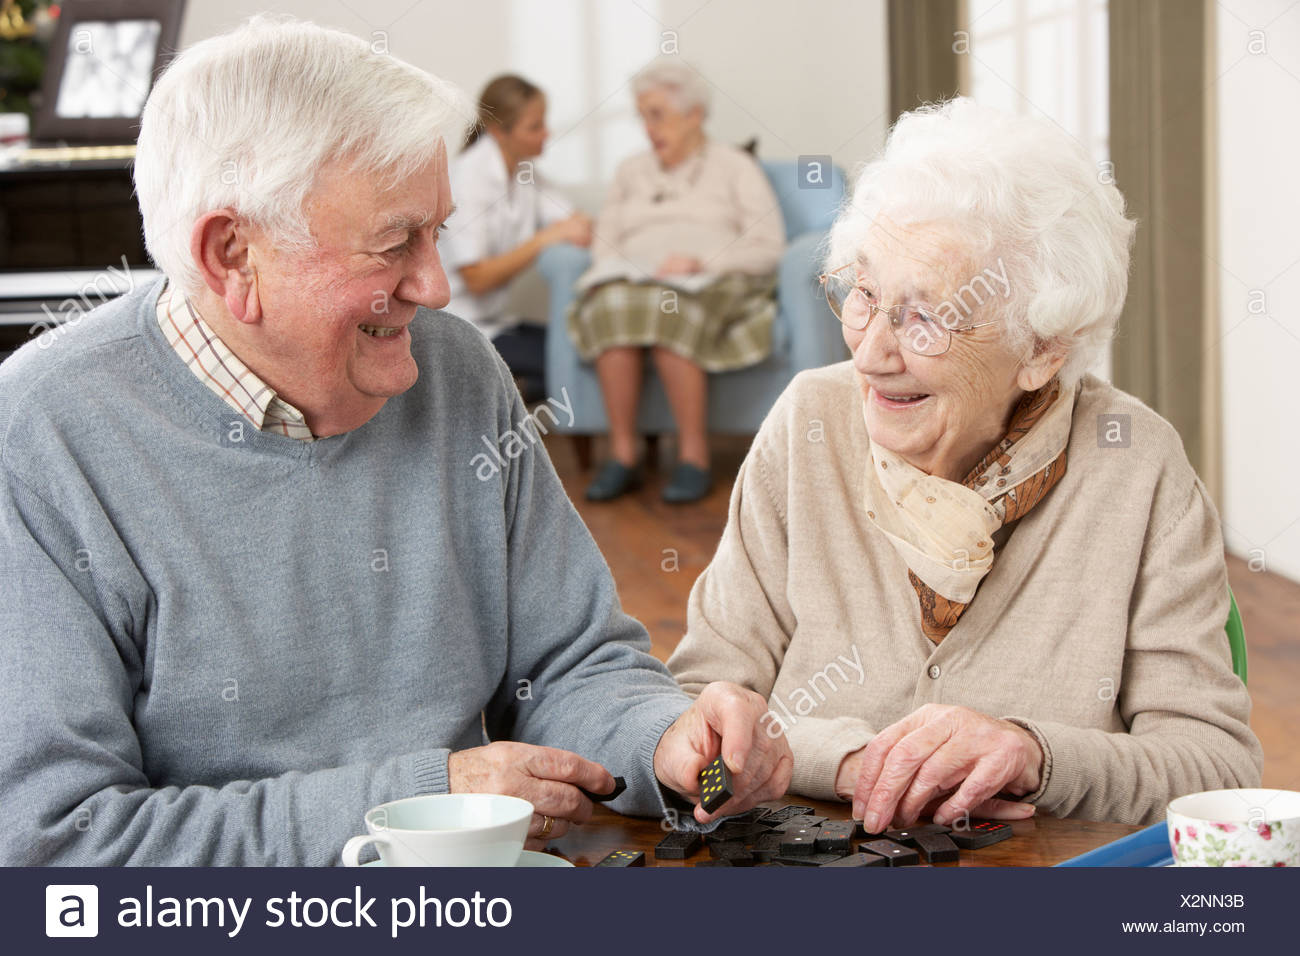 Couple Playing Dominoes At Day Care Centre - Stock Image